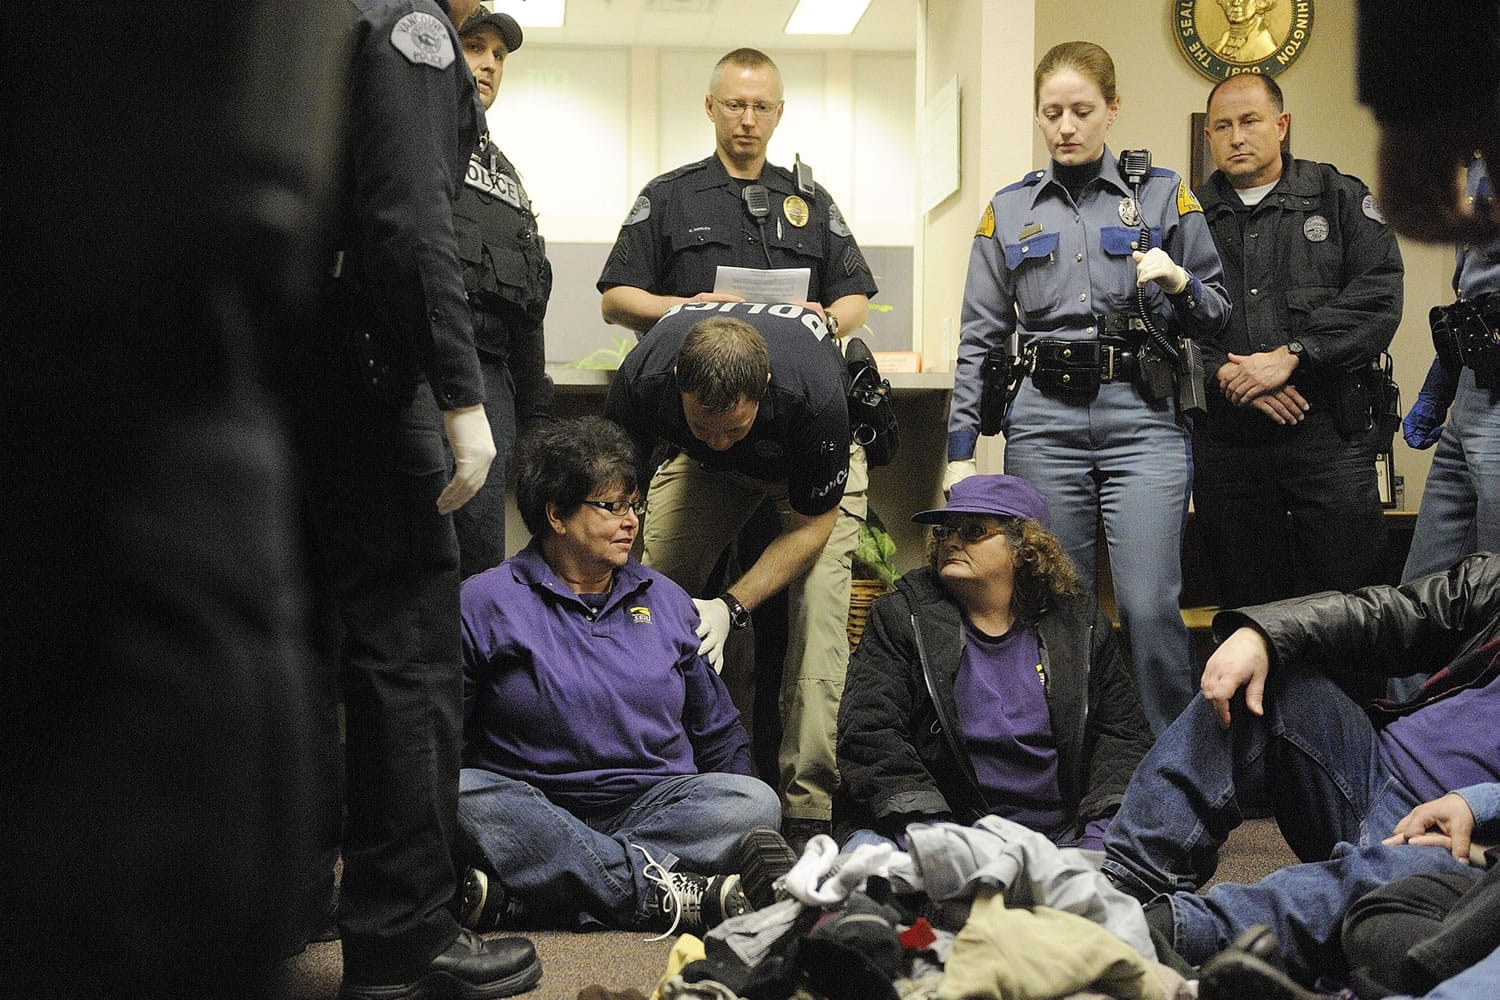 Vancouver police and Washington State Patrol officers arrest Pamela McCarty, left, a home care provider from Centralia, Tuesday for suspicion of misdemeanor trespassing after she and other protesters refused to leave the state Office of Administrative Hearings in Vancouver.